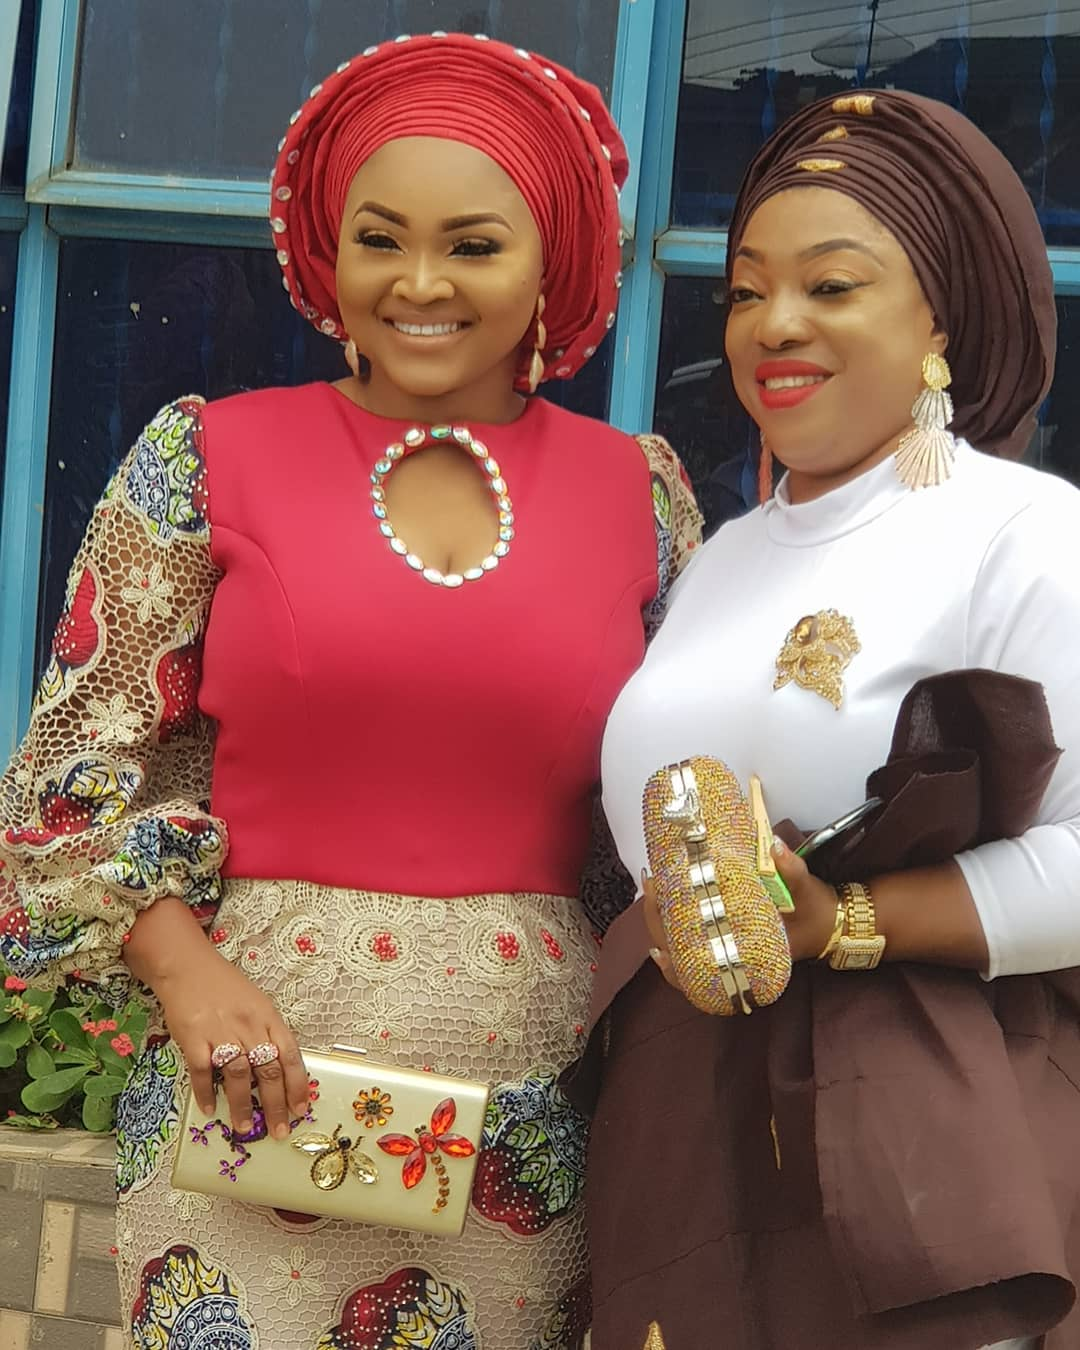 big-girl-mighty-god-mercy-aigbe-slays-in-owambe-look-as-she-shows-off-her-big-sister-2